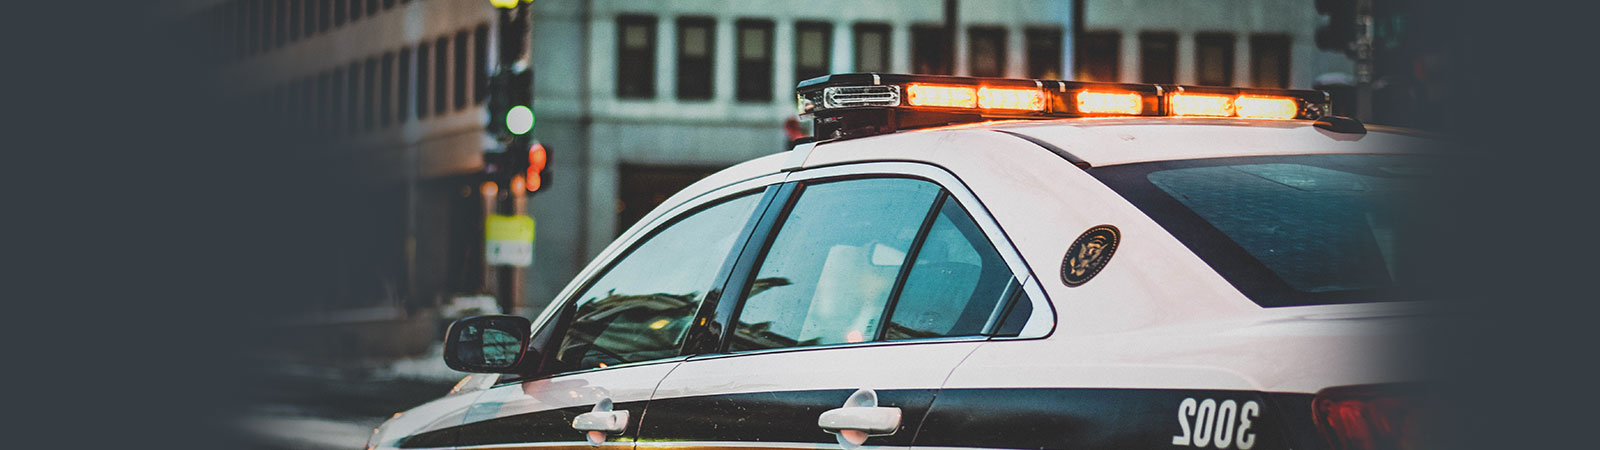 Tablet applications in public safety solutions